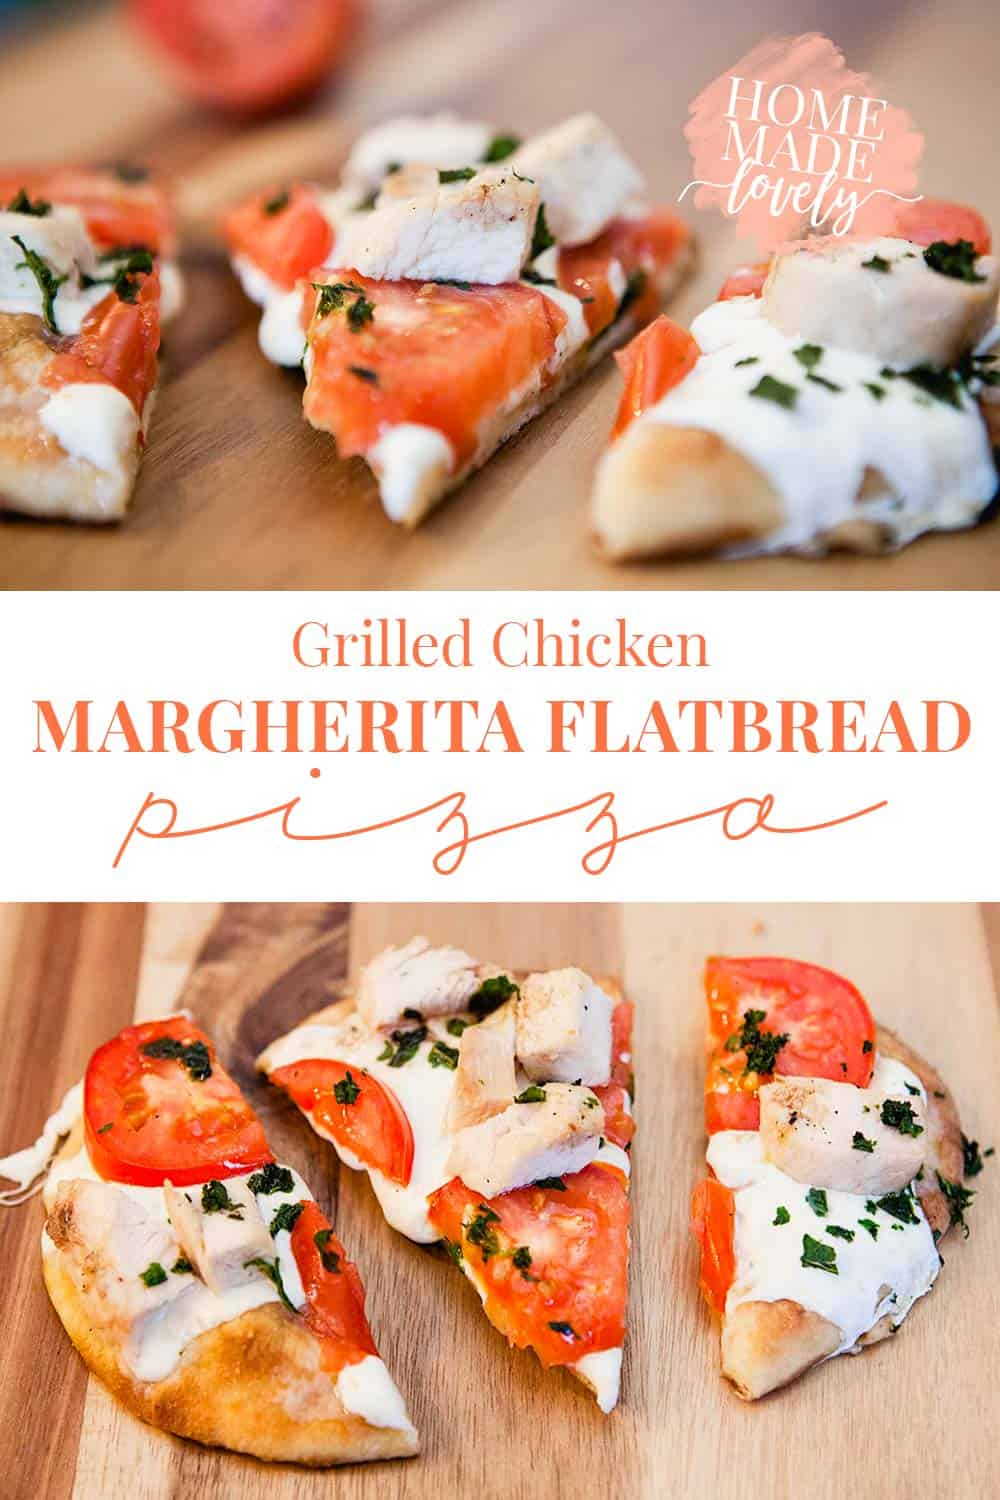 Forget the delivery! ThisGrilled Chicken Margherita Flatbread Pizza makes the perfect weekday lunch or even date night dinner!